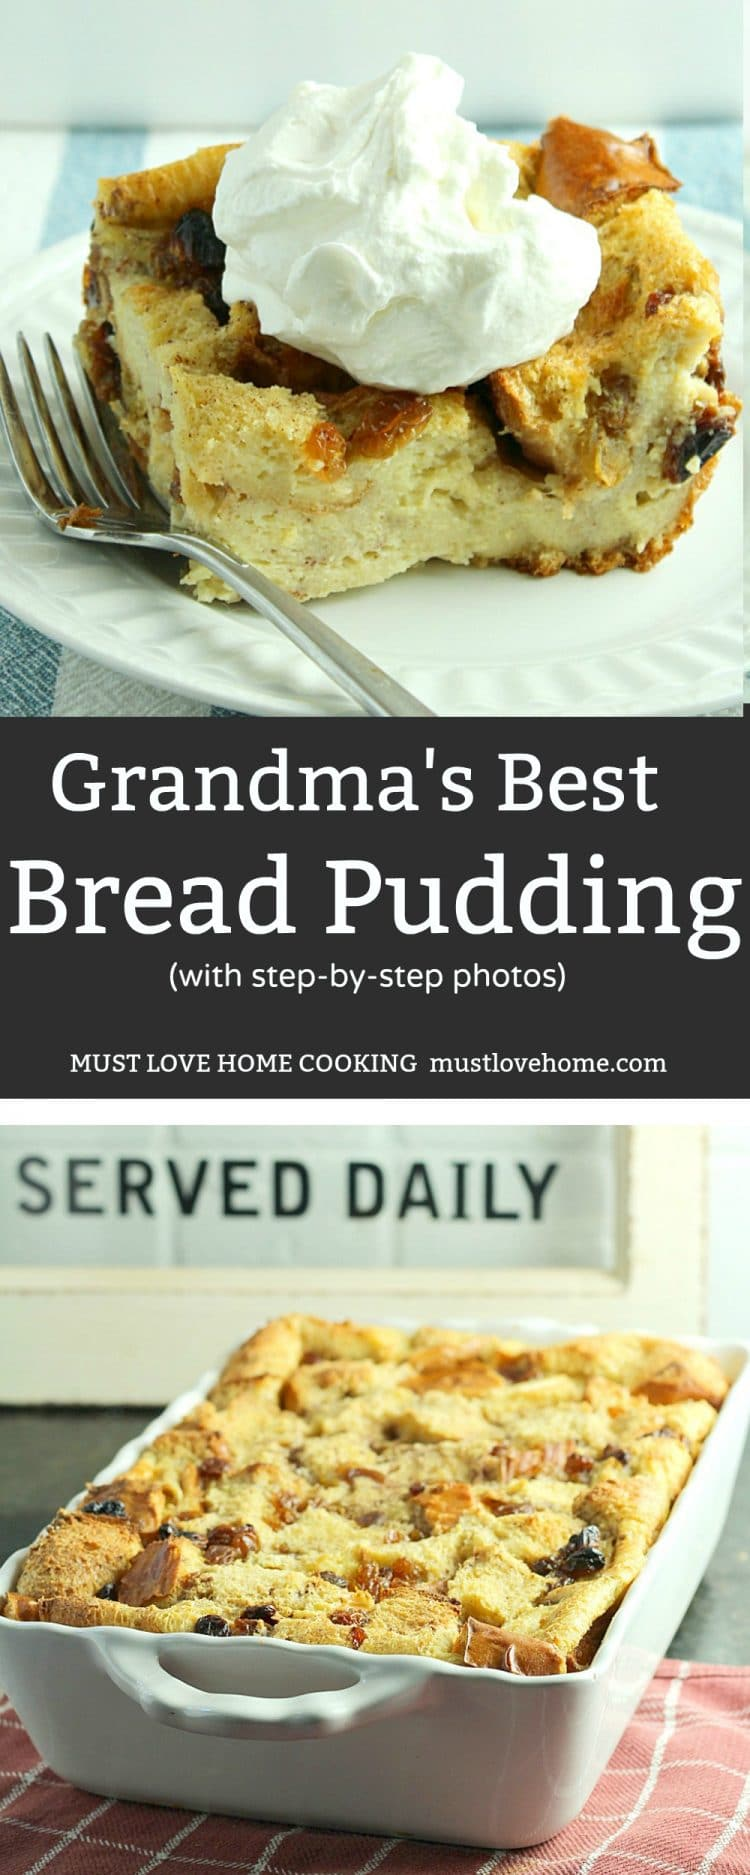 Grandma's Secret Recipe Bread Pudding is an easy to make traditional dessert sure to be a family favorite.  Made with crusty bread and other simple ingredients, this is total comfort food!